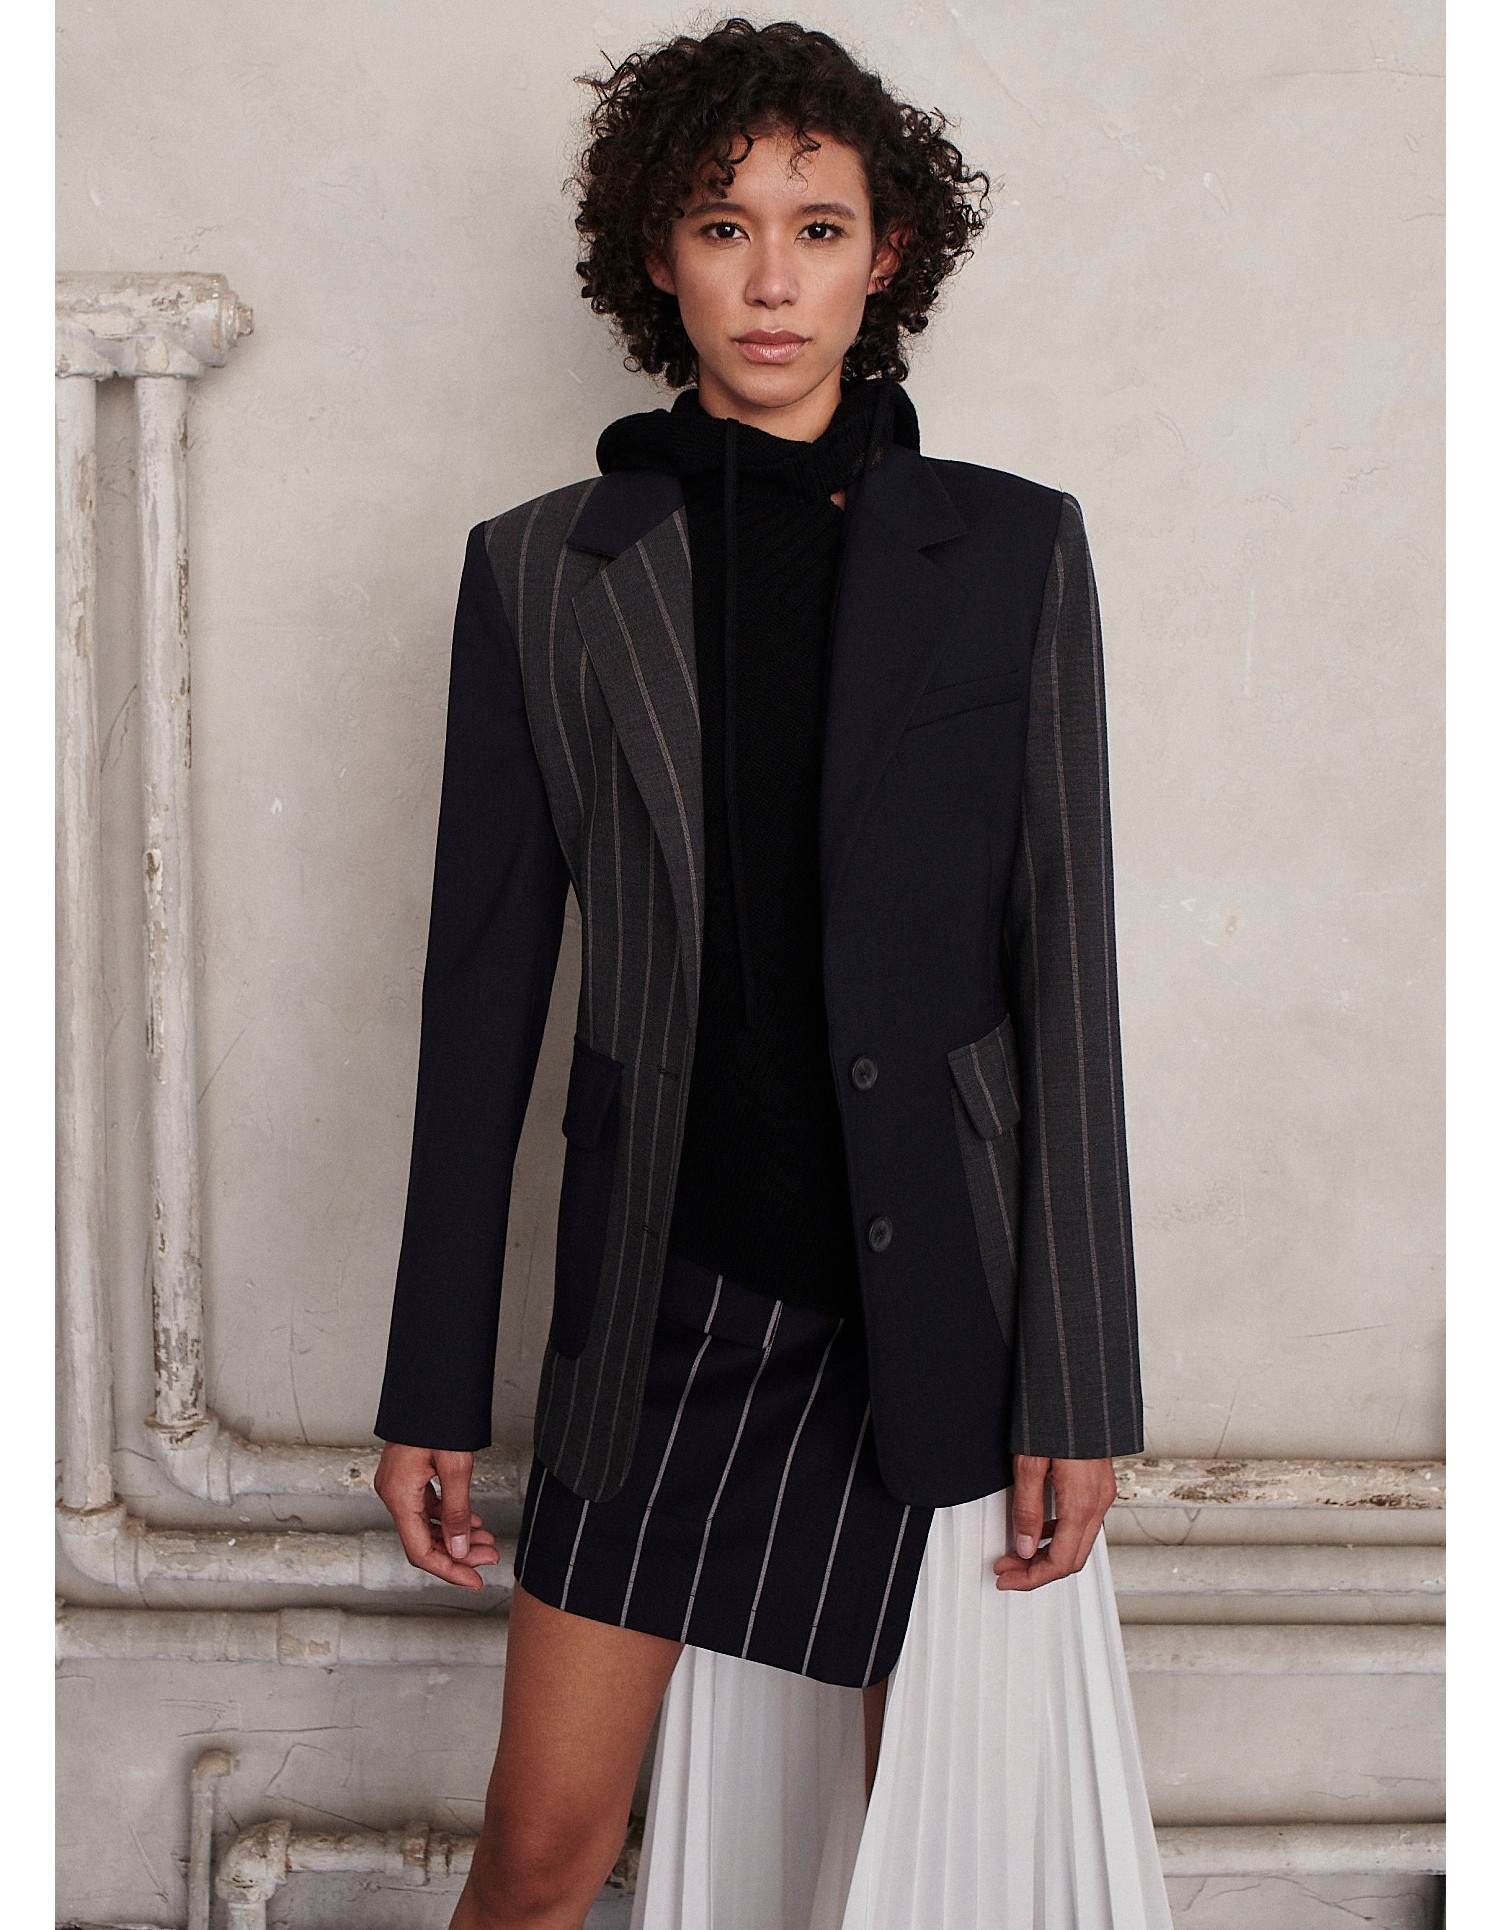 MONSE Patchwork Lace Up Jacket on Model Front View